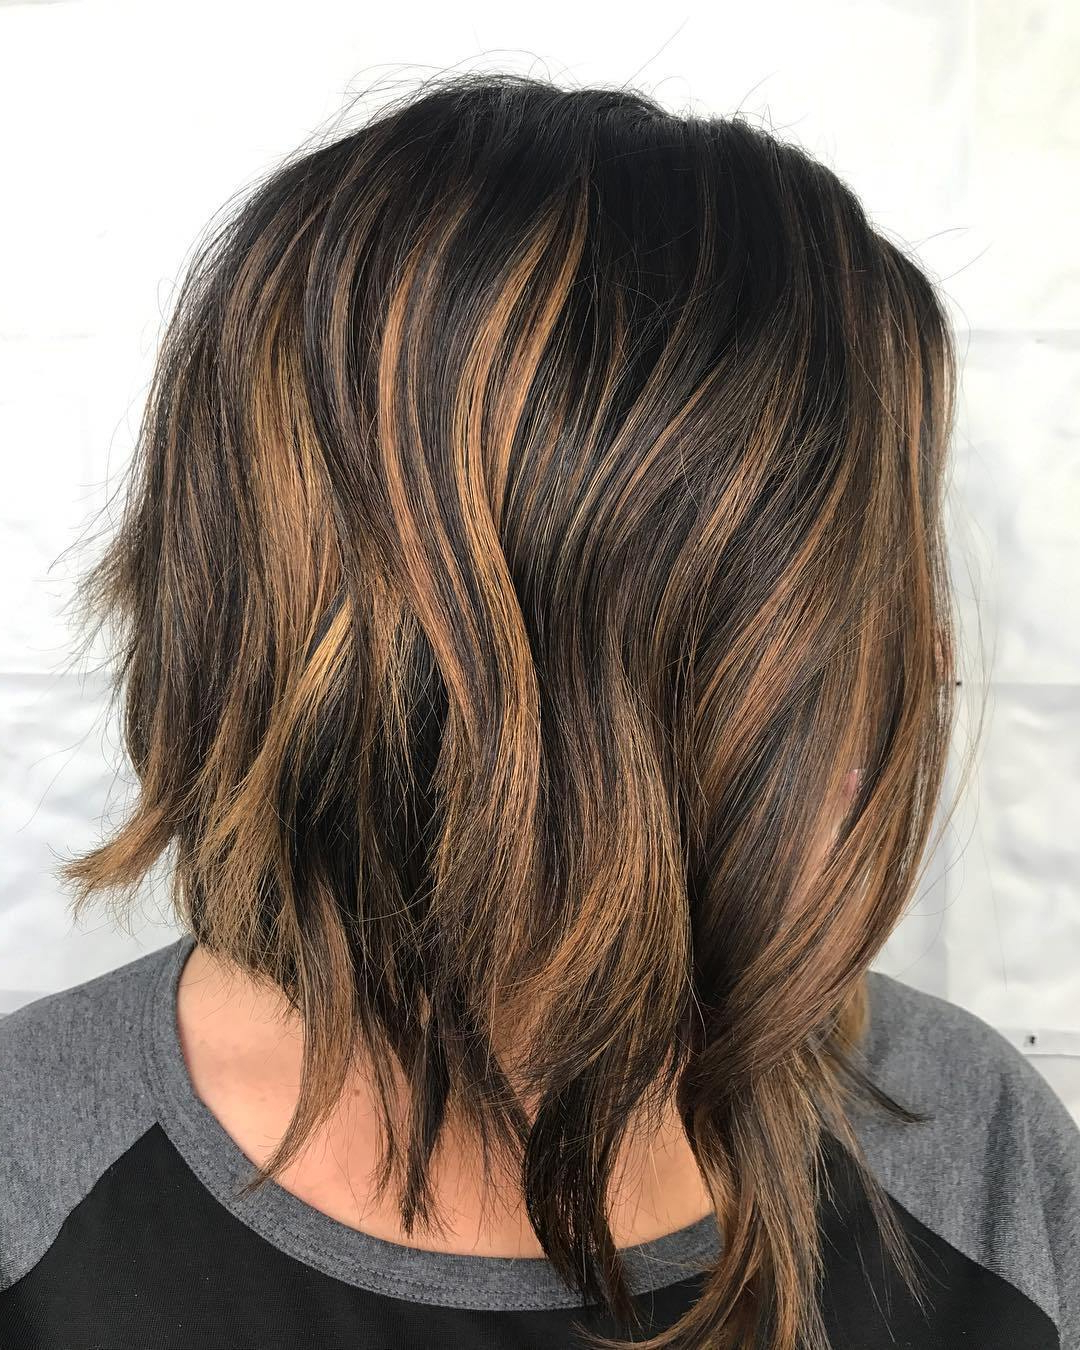 50 Hairstyles For Thick Wavy Hair You Will Adore – Hair Inside Disconnected Shaggy Brunette Bob Hairstyles (View 7 of 20)